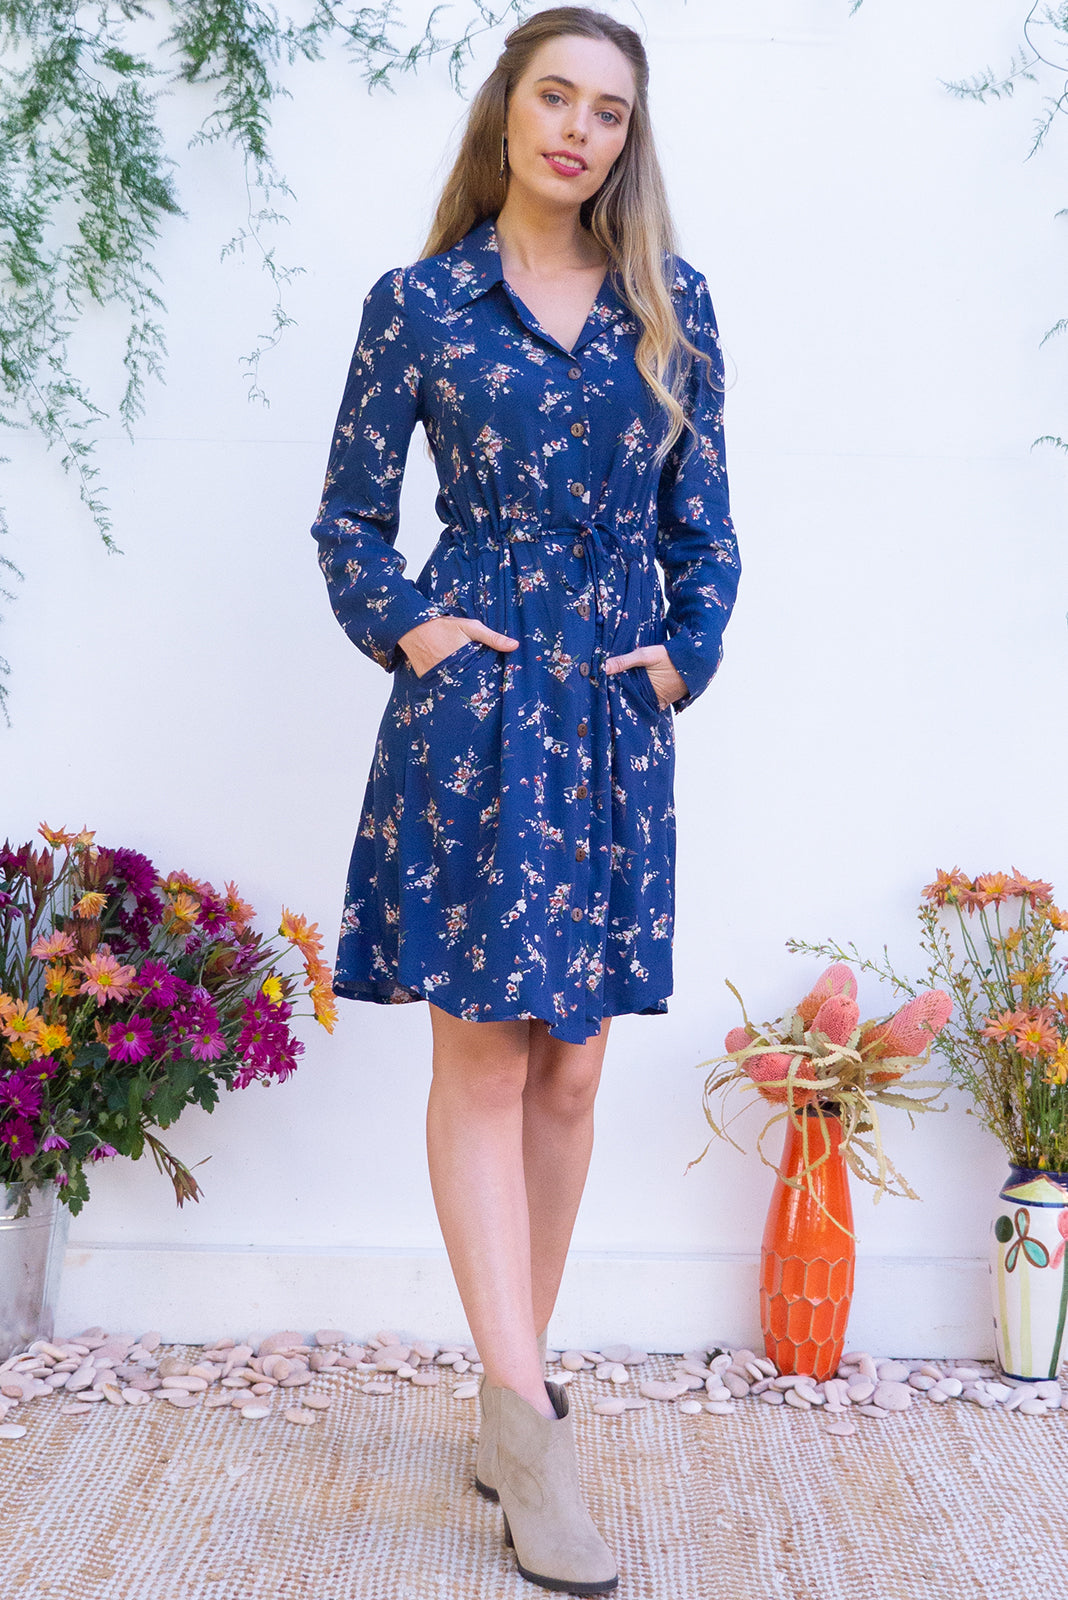 bbdf55449aa Alexandra Navy Skye Shirt Dress  Women s Vintage Floral Blue Day ...